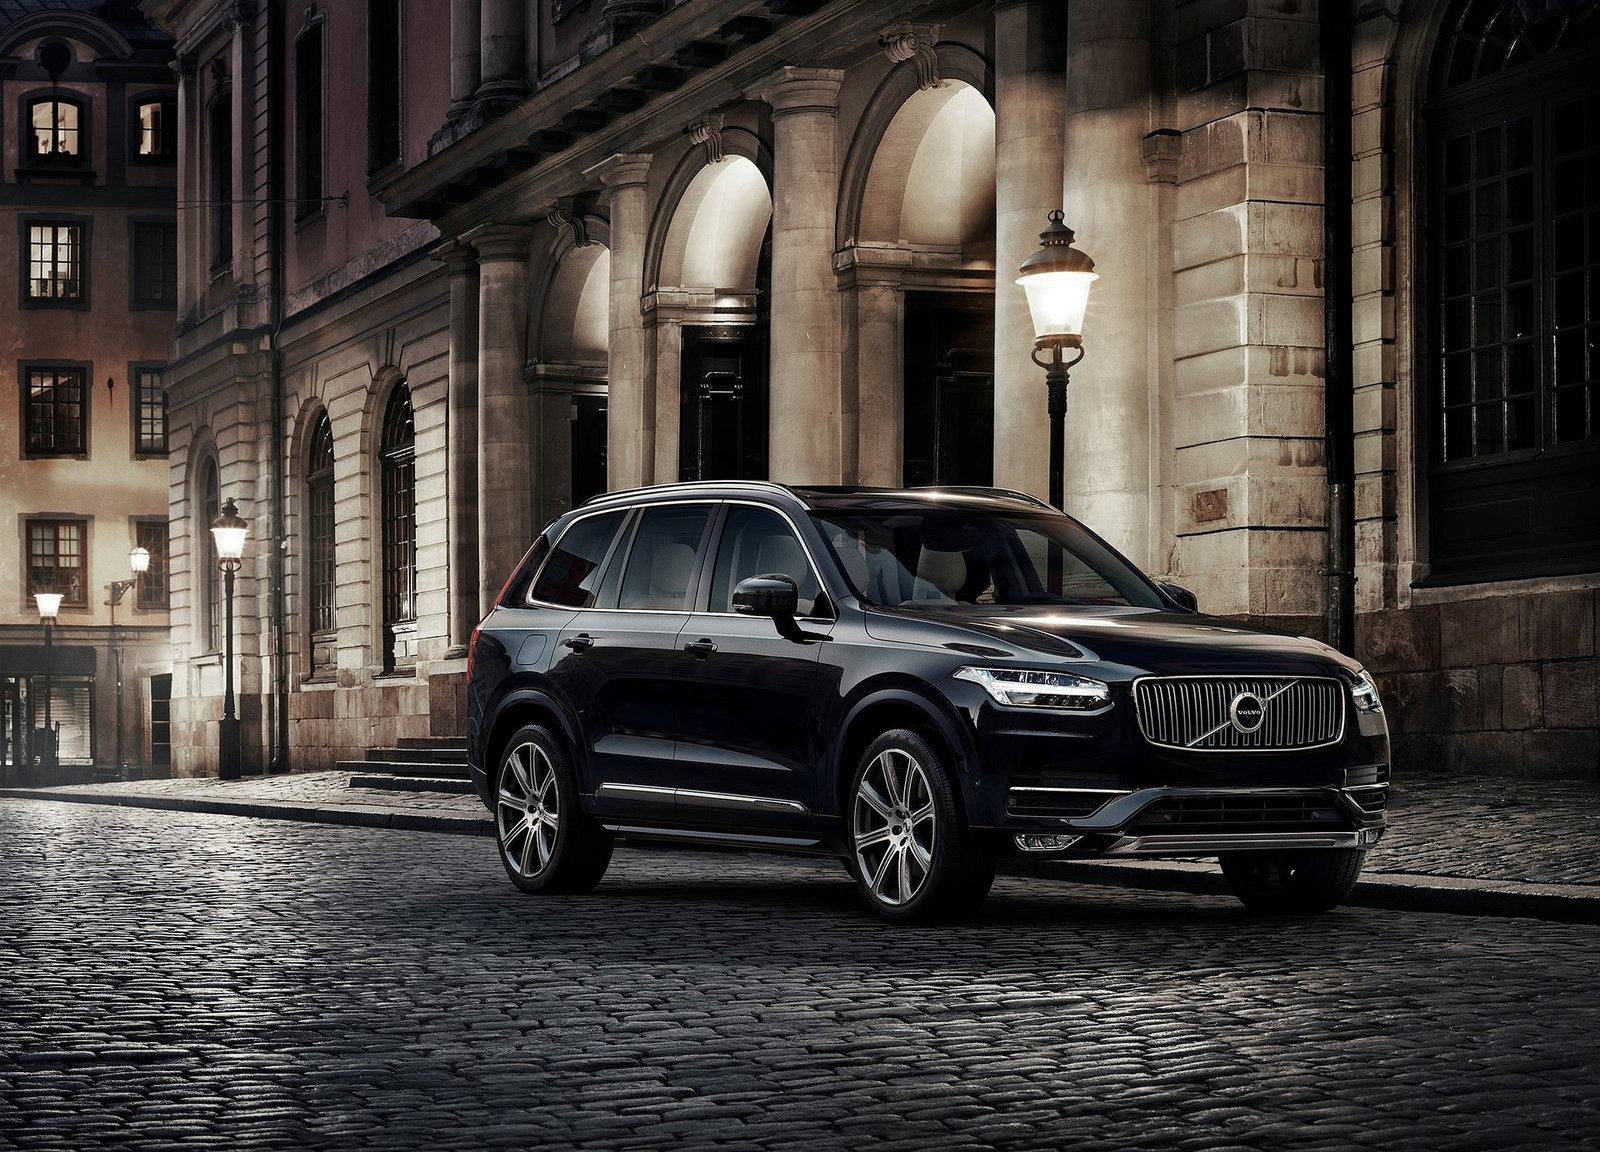 2018 Volvo XC90 Gets Standard Seven-Seat Configuration In The U.S. - autoevolution